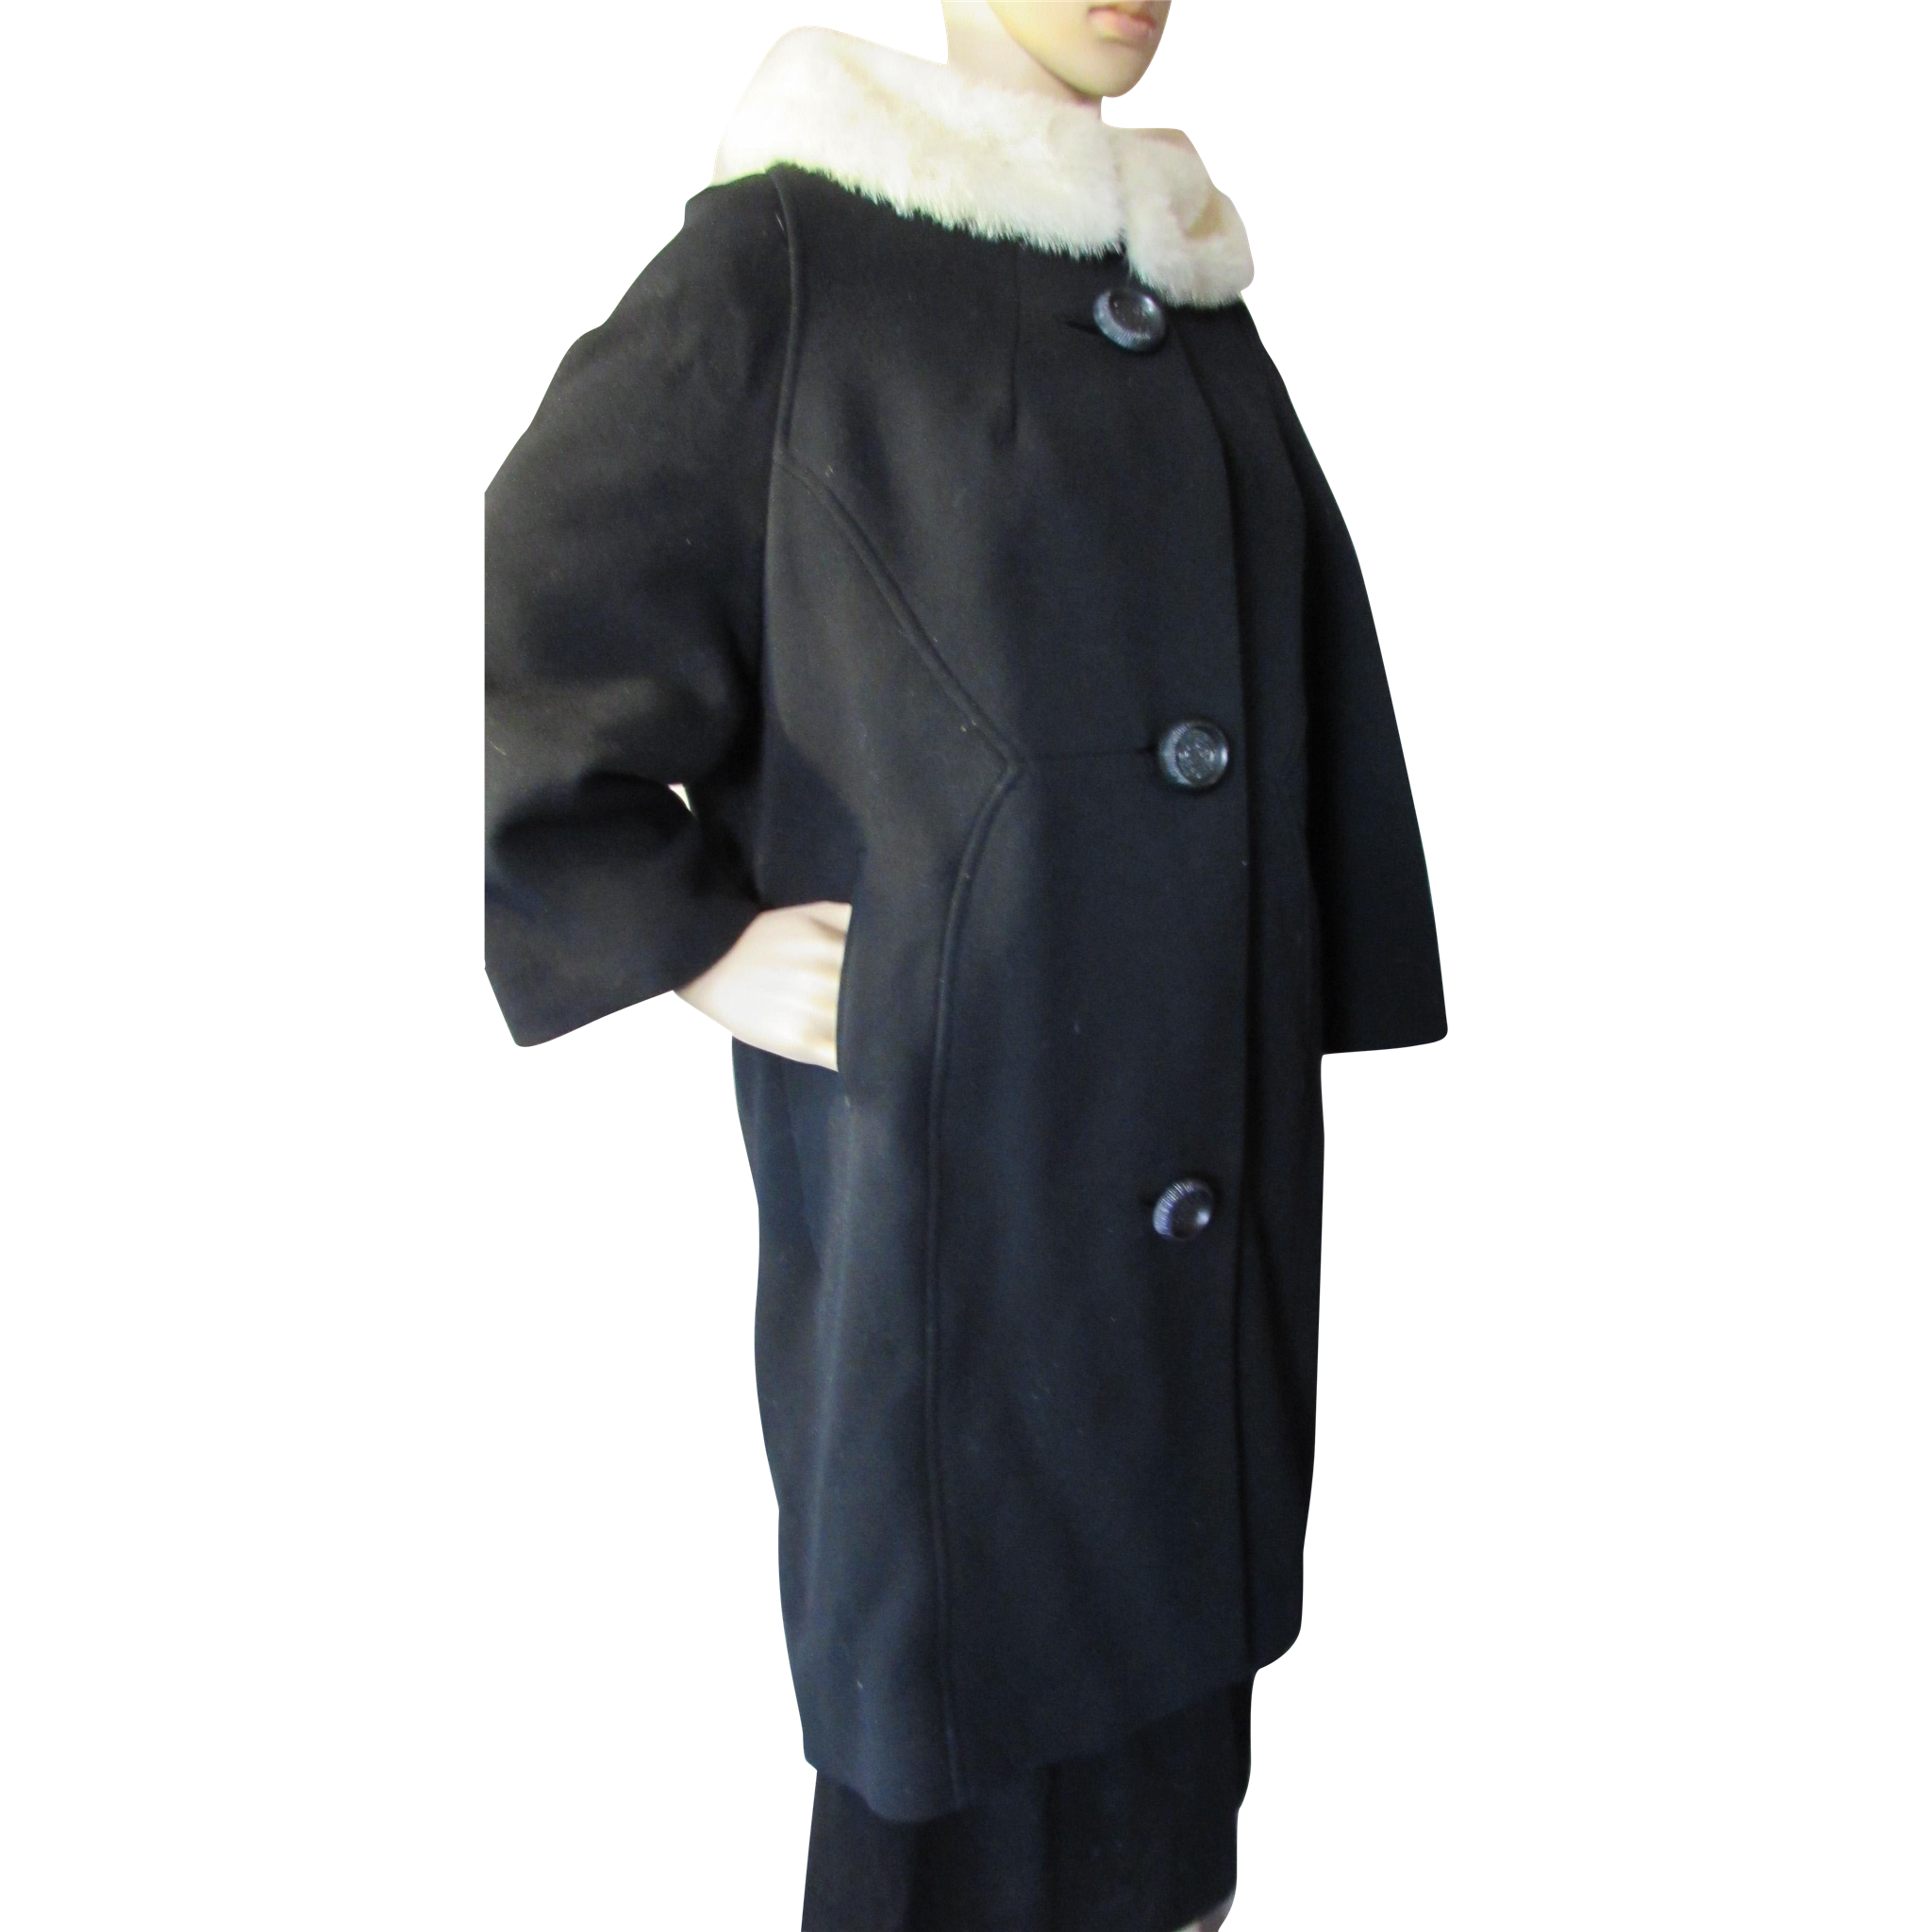 Attractive Mid Century Winter Coat in Black with White Fur Collar Union Label Stevens Rockford Illinois